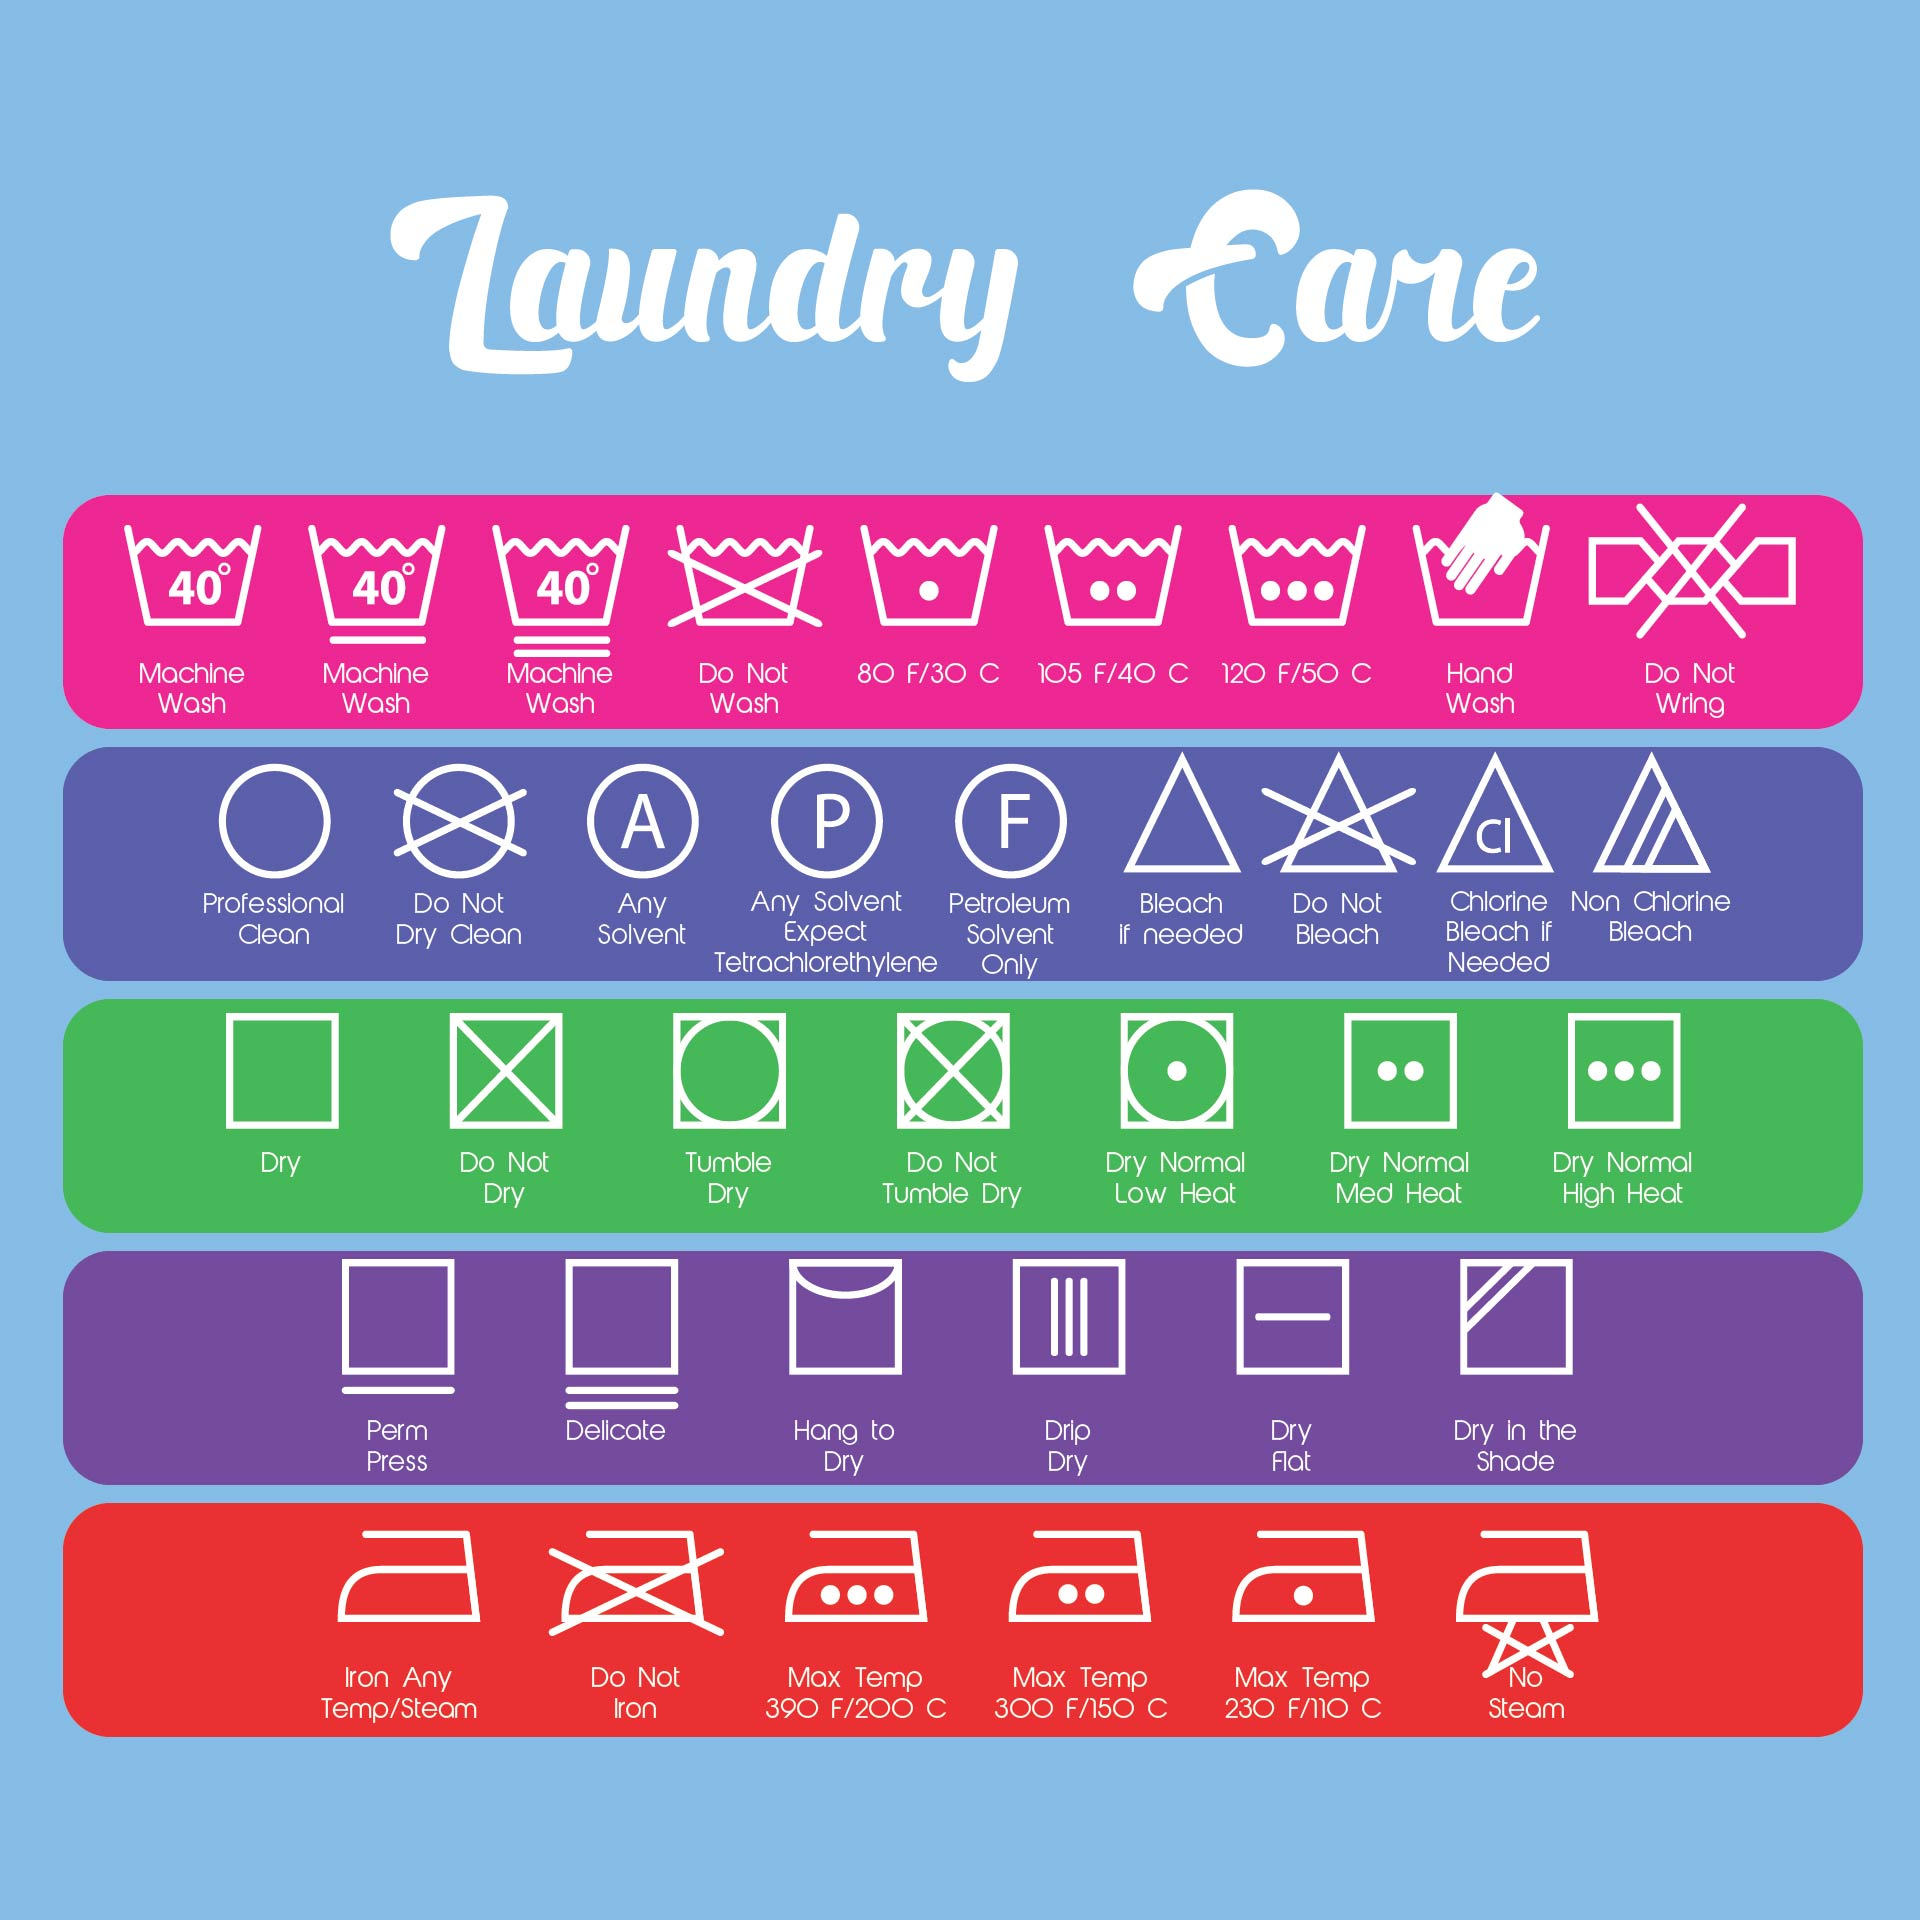 Symbols For Laundry Care Instructions